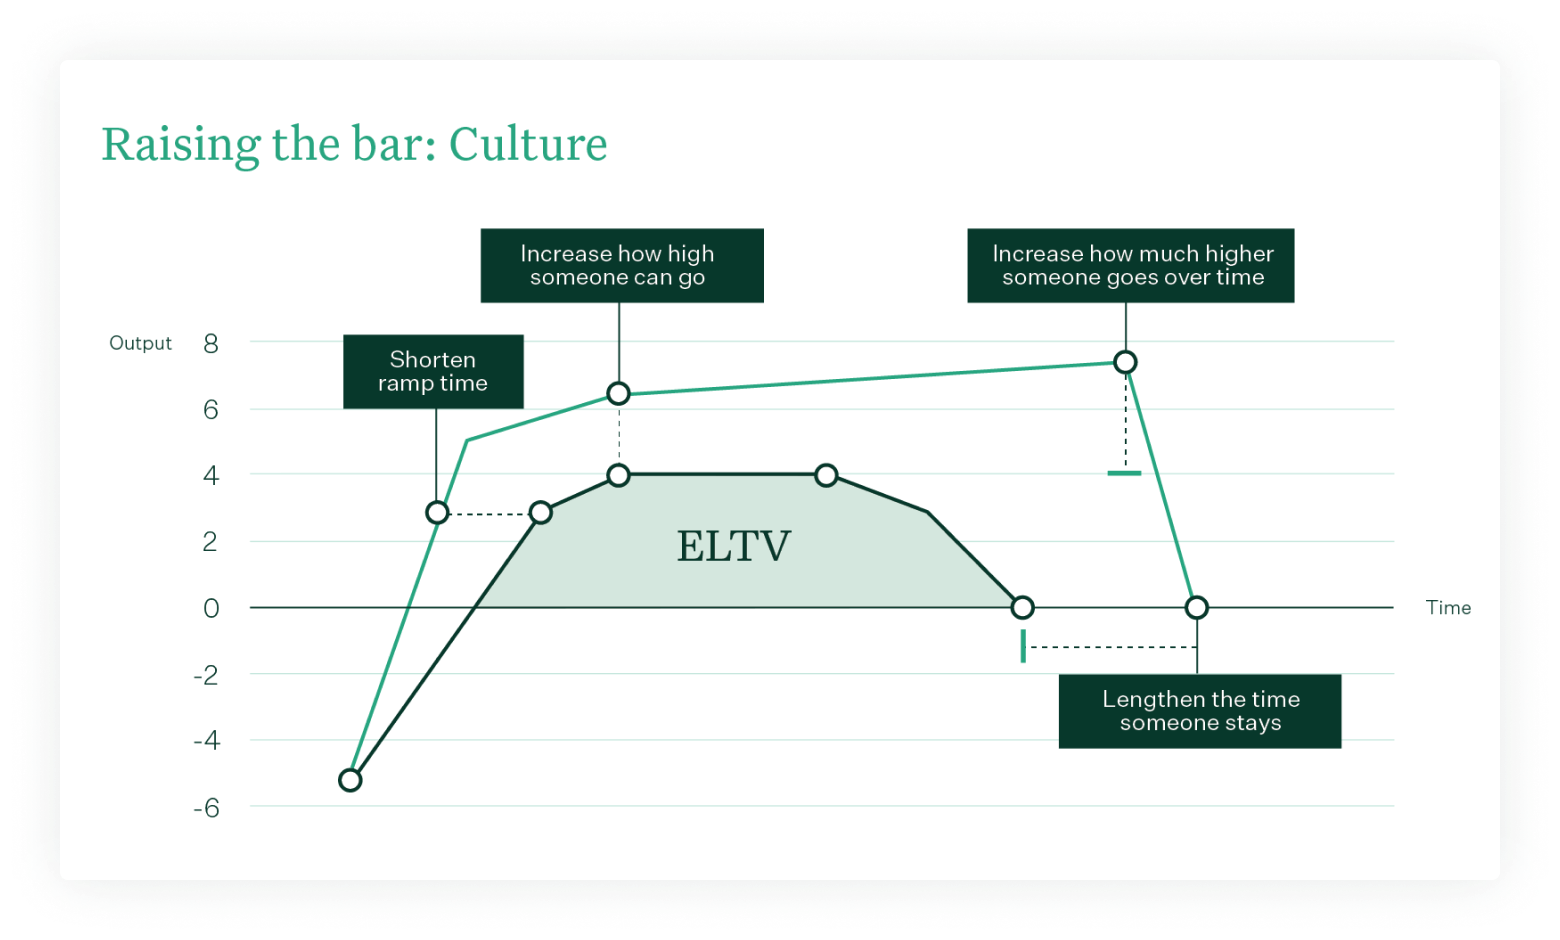 ELTV – Raising the bare: Culture